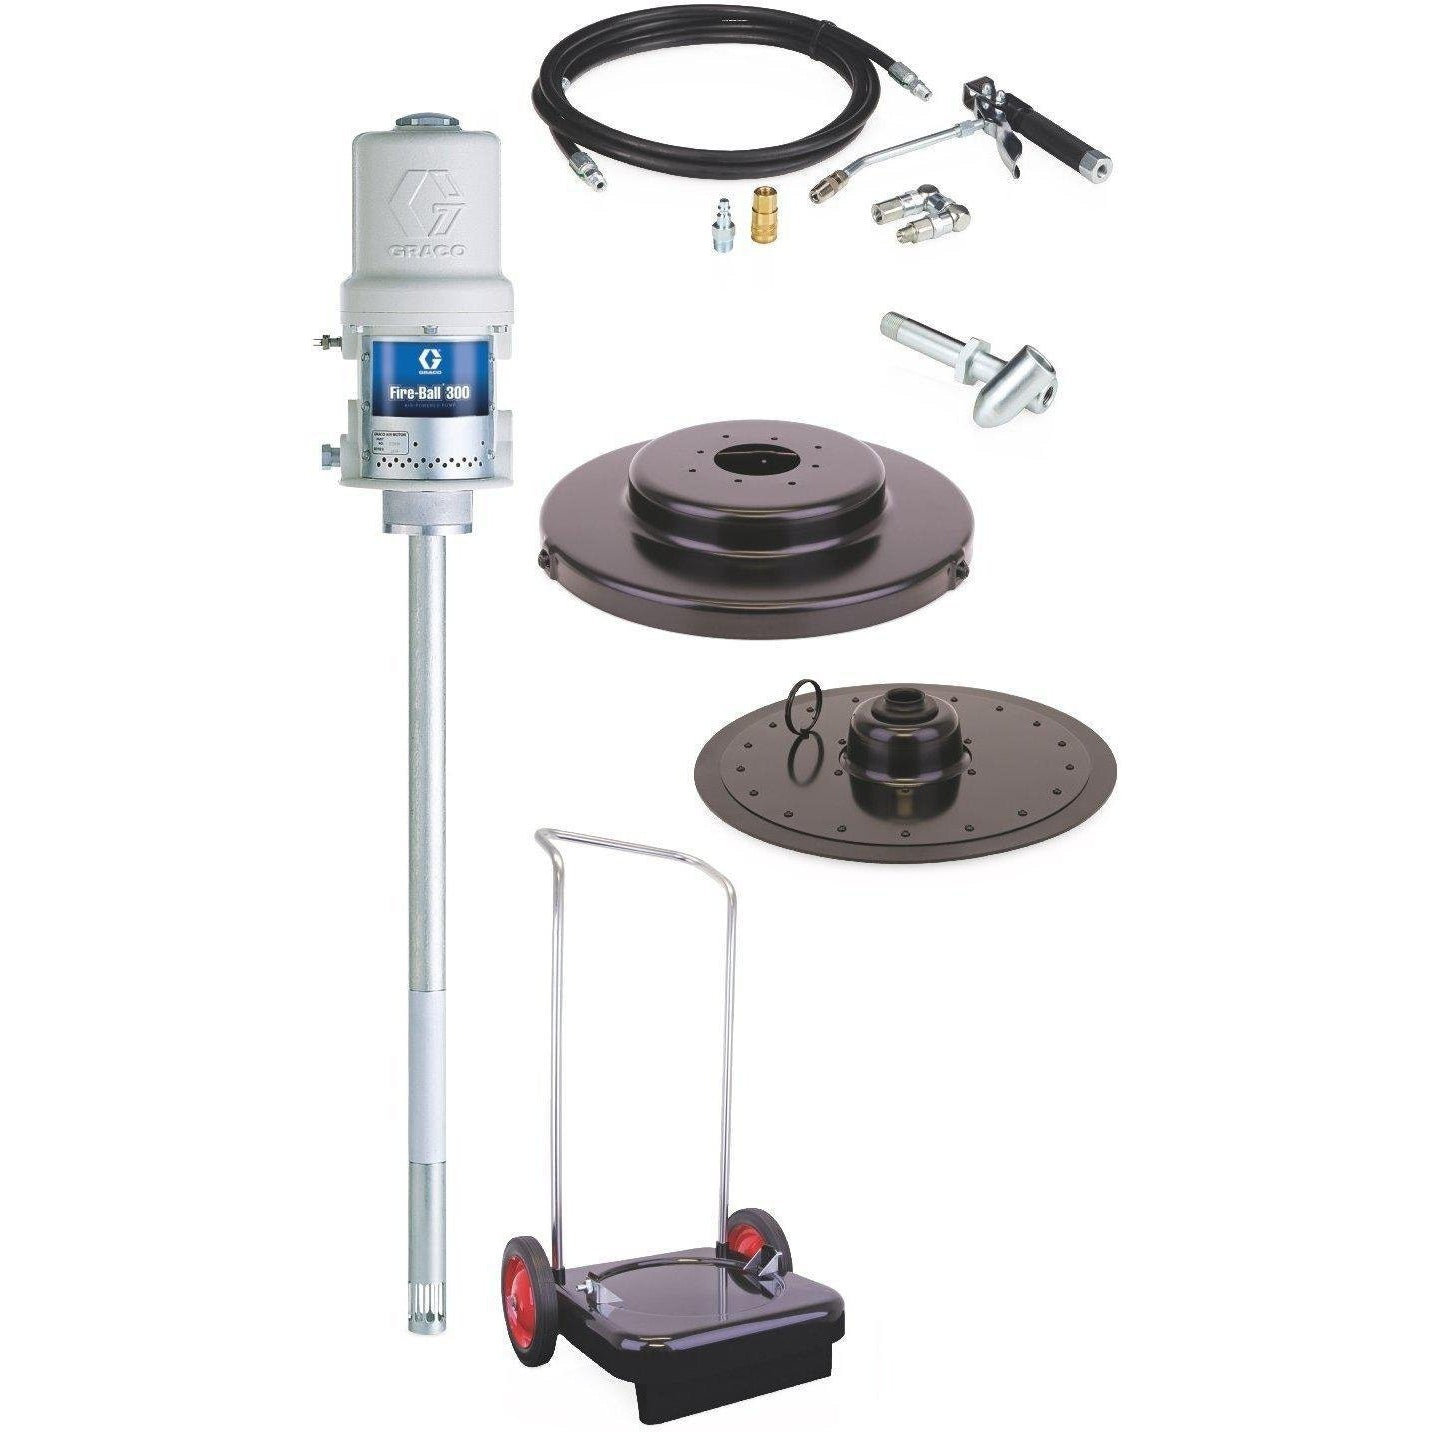 Graco 225026 Fireball 300 Series 50:1 120 Lb. Grease Pump - Portable 2-Wheel Cart Package - Fireball Equipment Ltd.